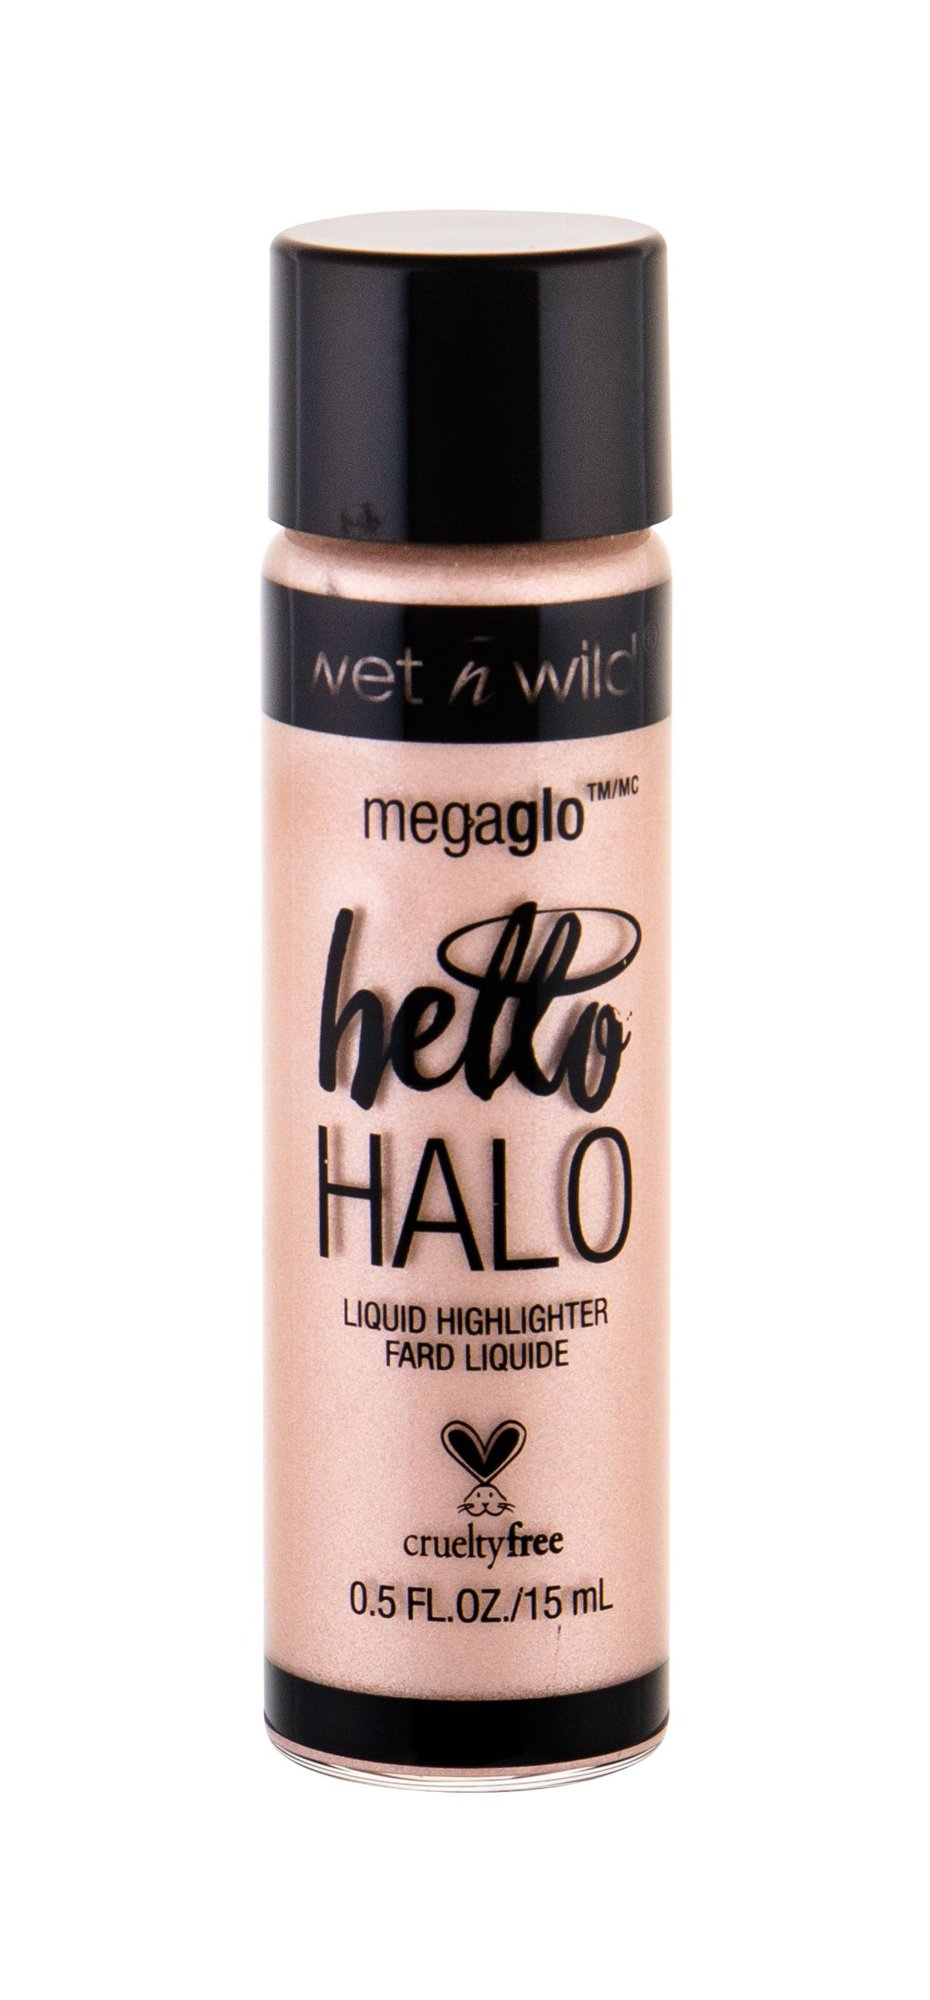 Wet n Wild MegaGlo Brightener 15ml Halo, Goodbye